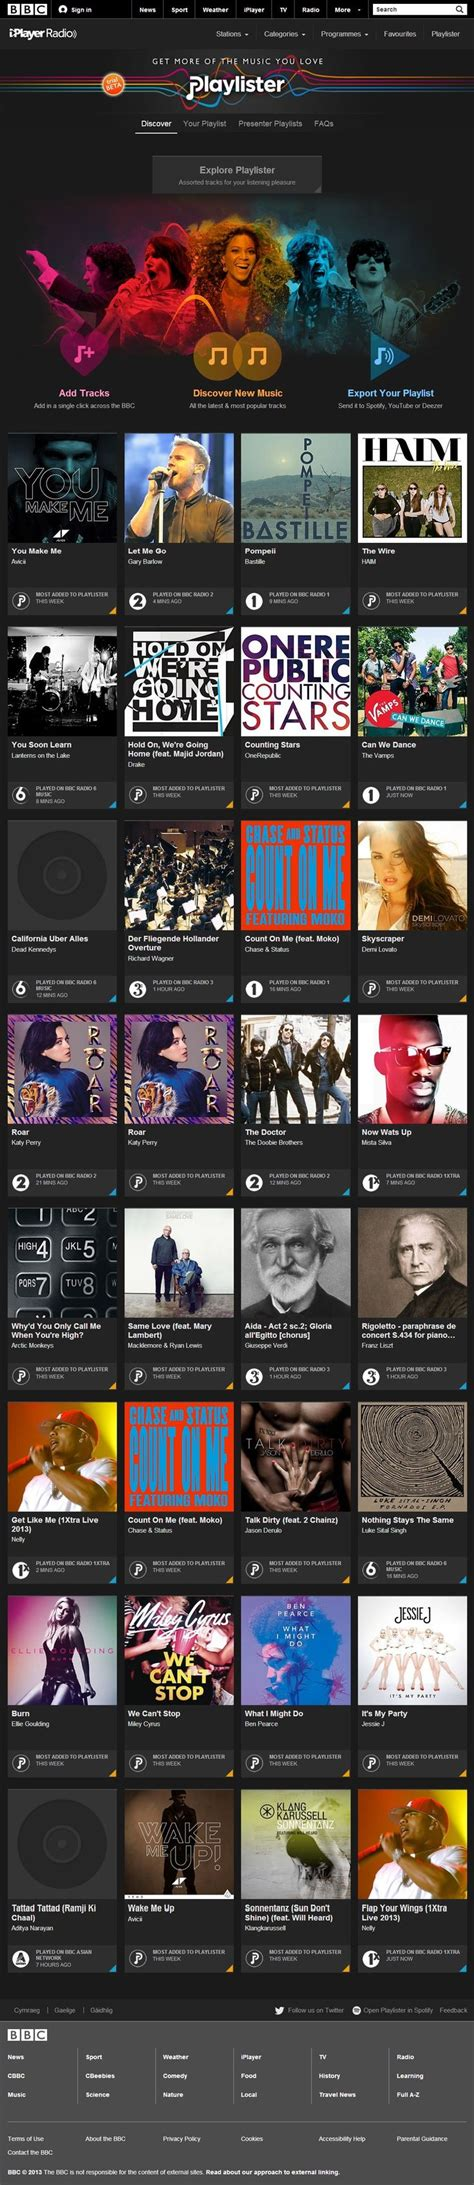 swipe velocity tab pattern unlock done by flashing gsm forum bbc playlister just released a cards based ui for music